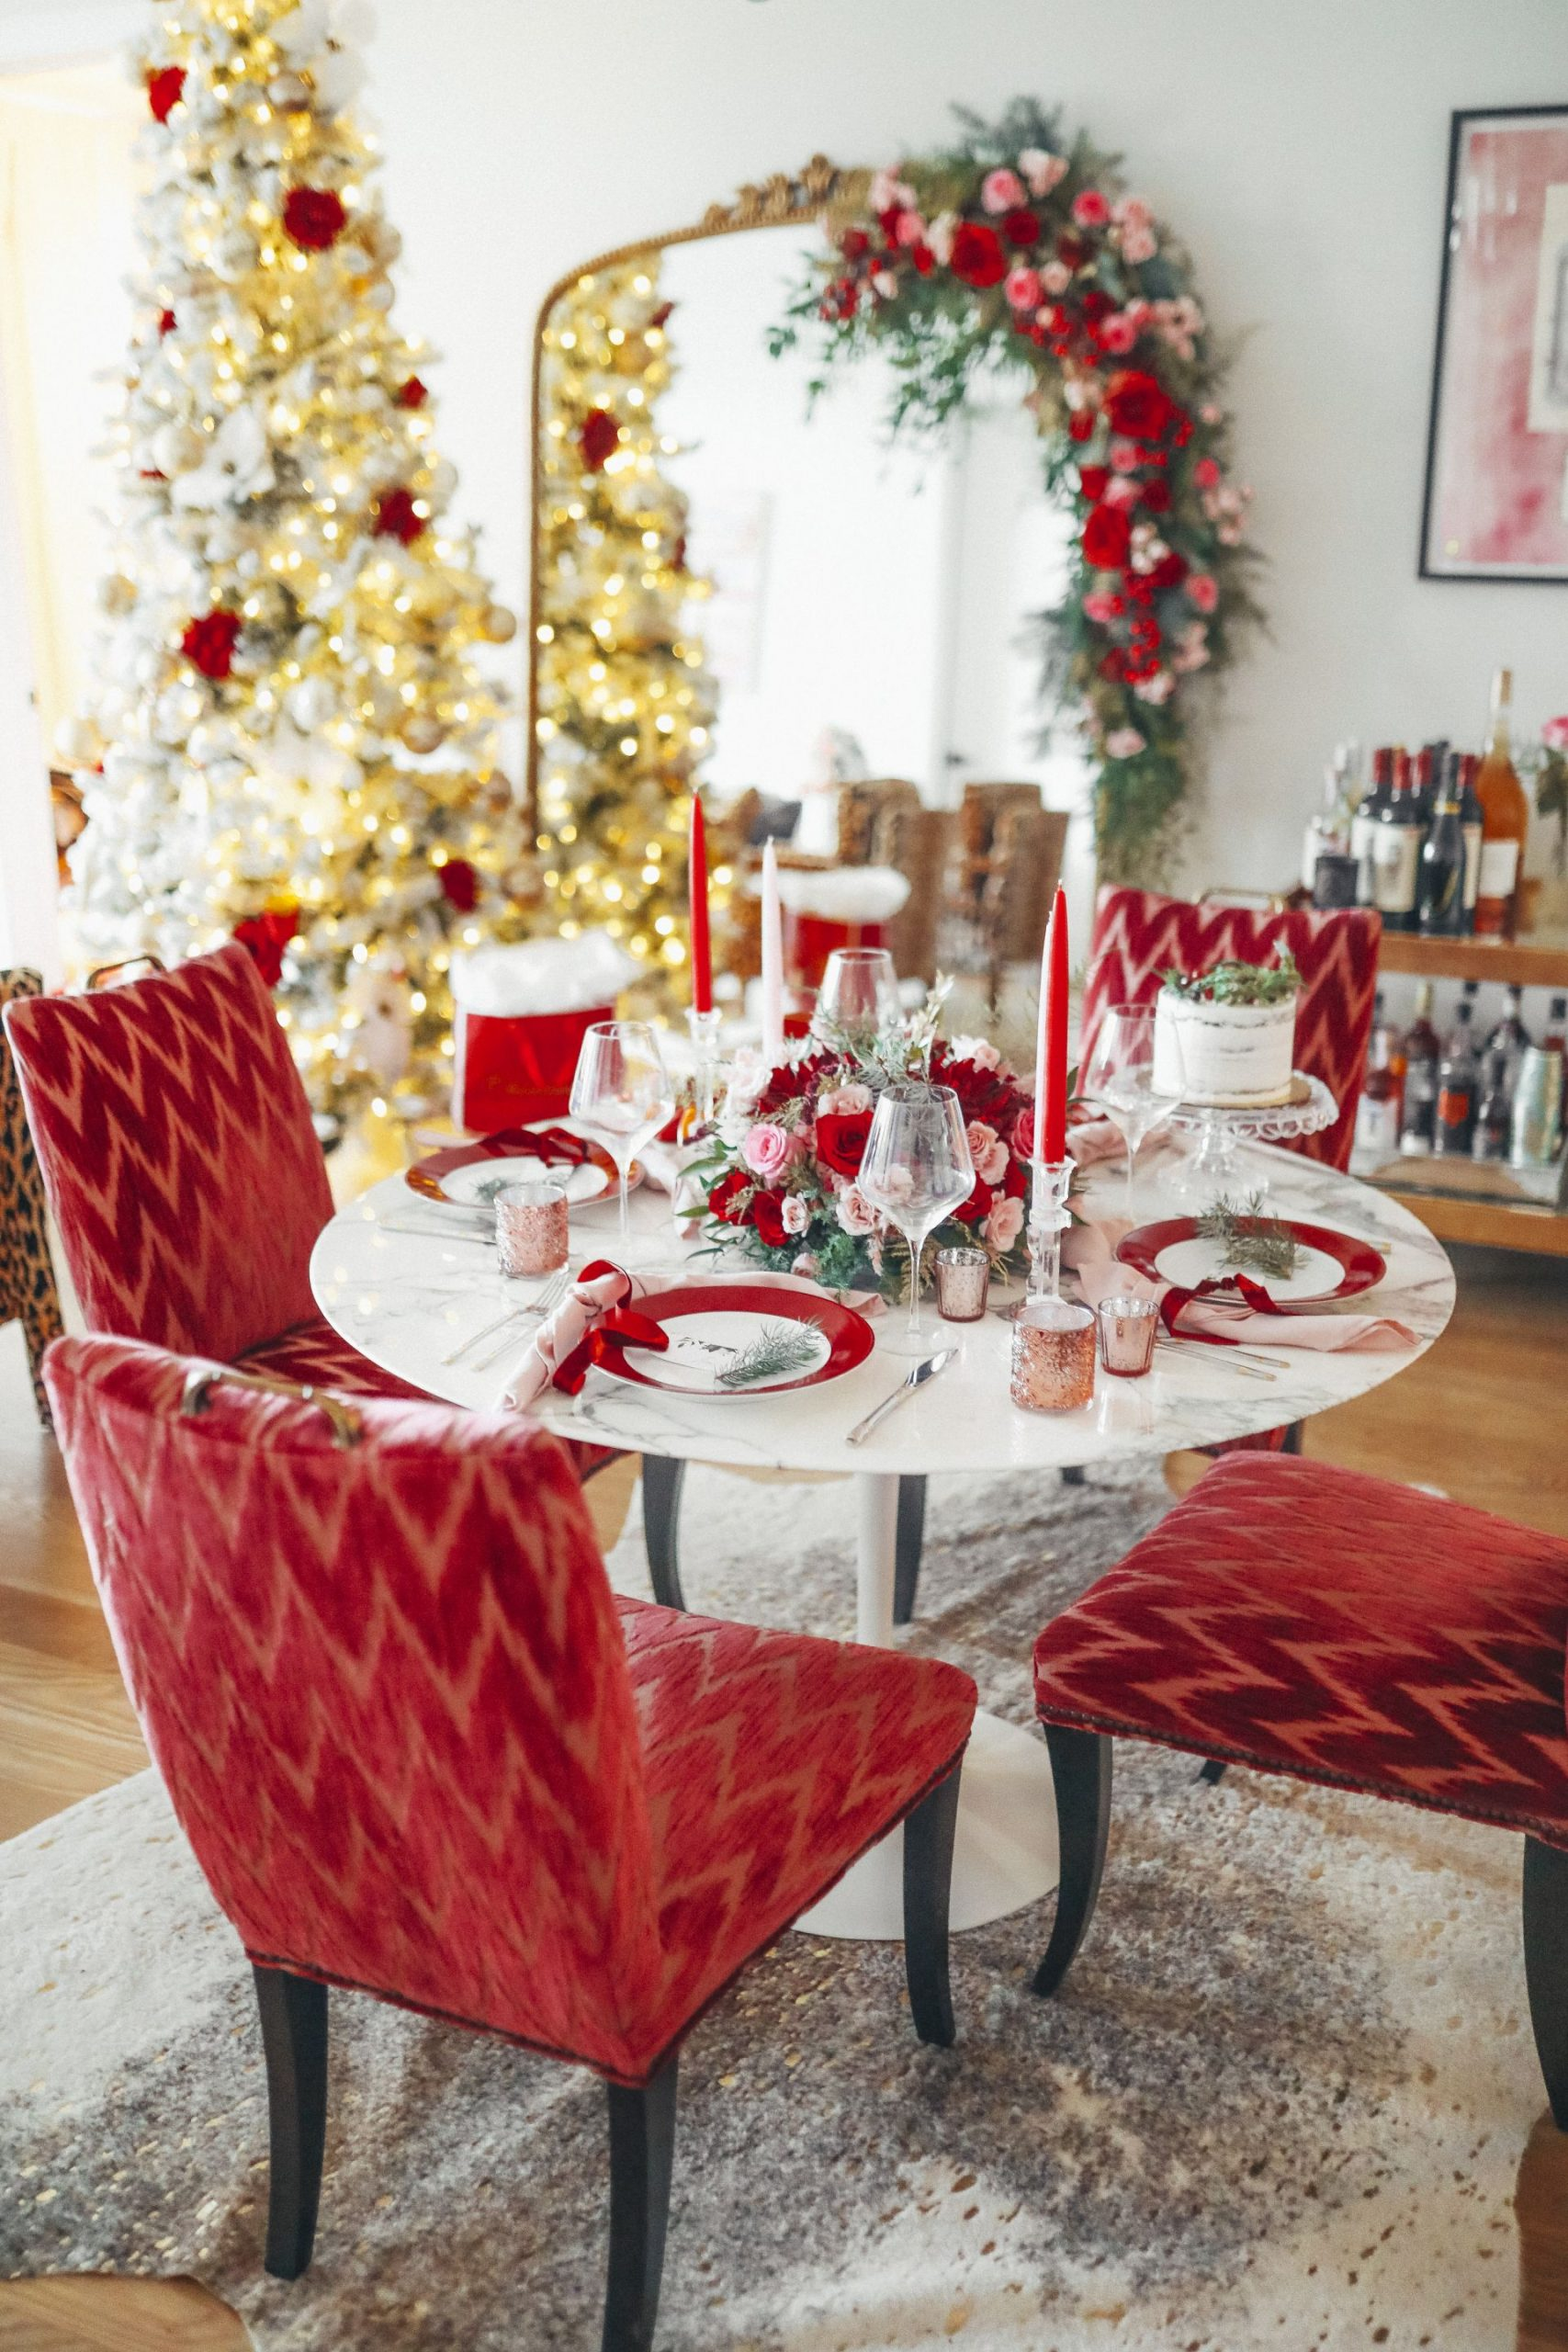 chicago event planner, chicago home, anthropologie primrose mirror, revolve red dress, king of christmas flocked tree, floral garland on mirror, chicago florist, best chicago glam birthday, glam dining room, Crate and barrel red plates, red themed party